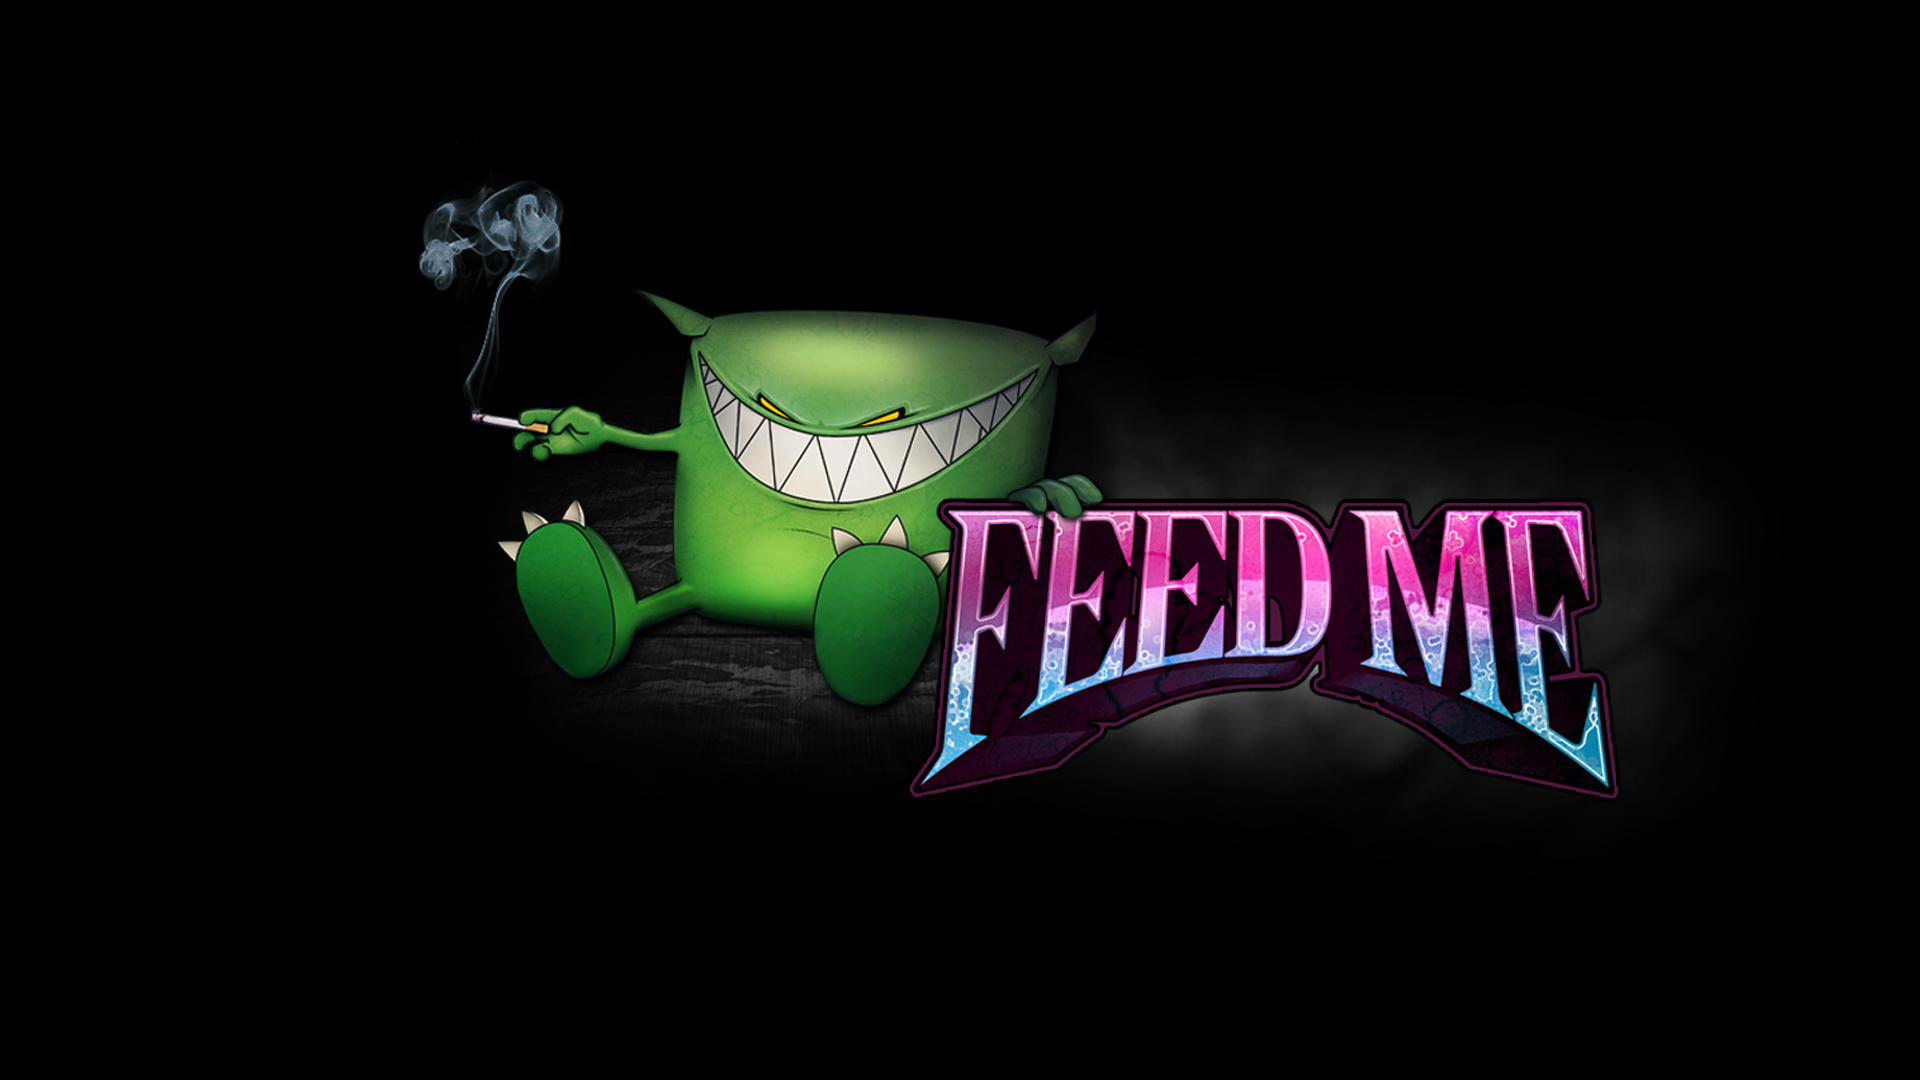 1920x1080 - Feed Me Wallpapers 6